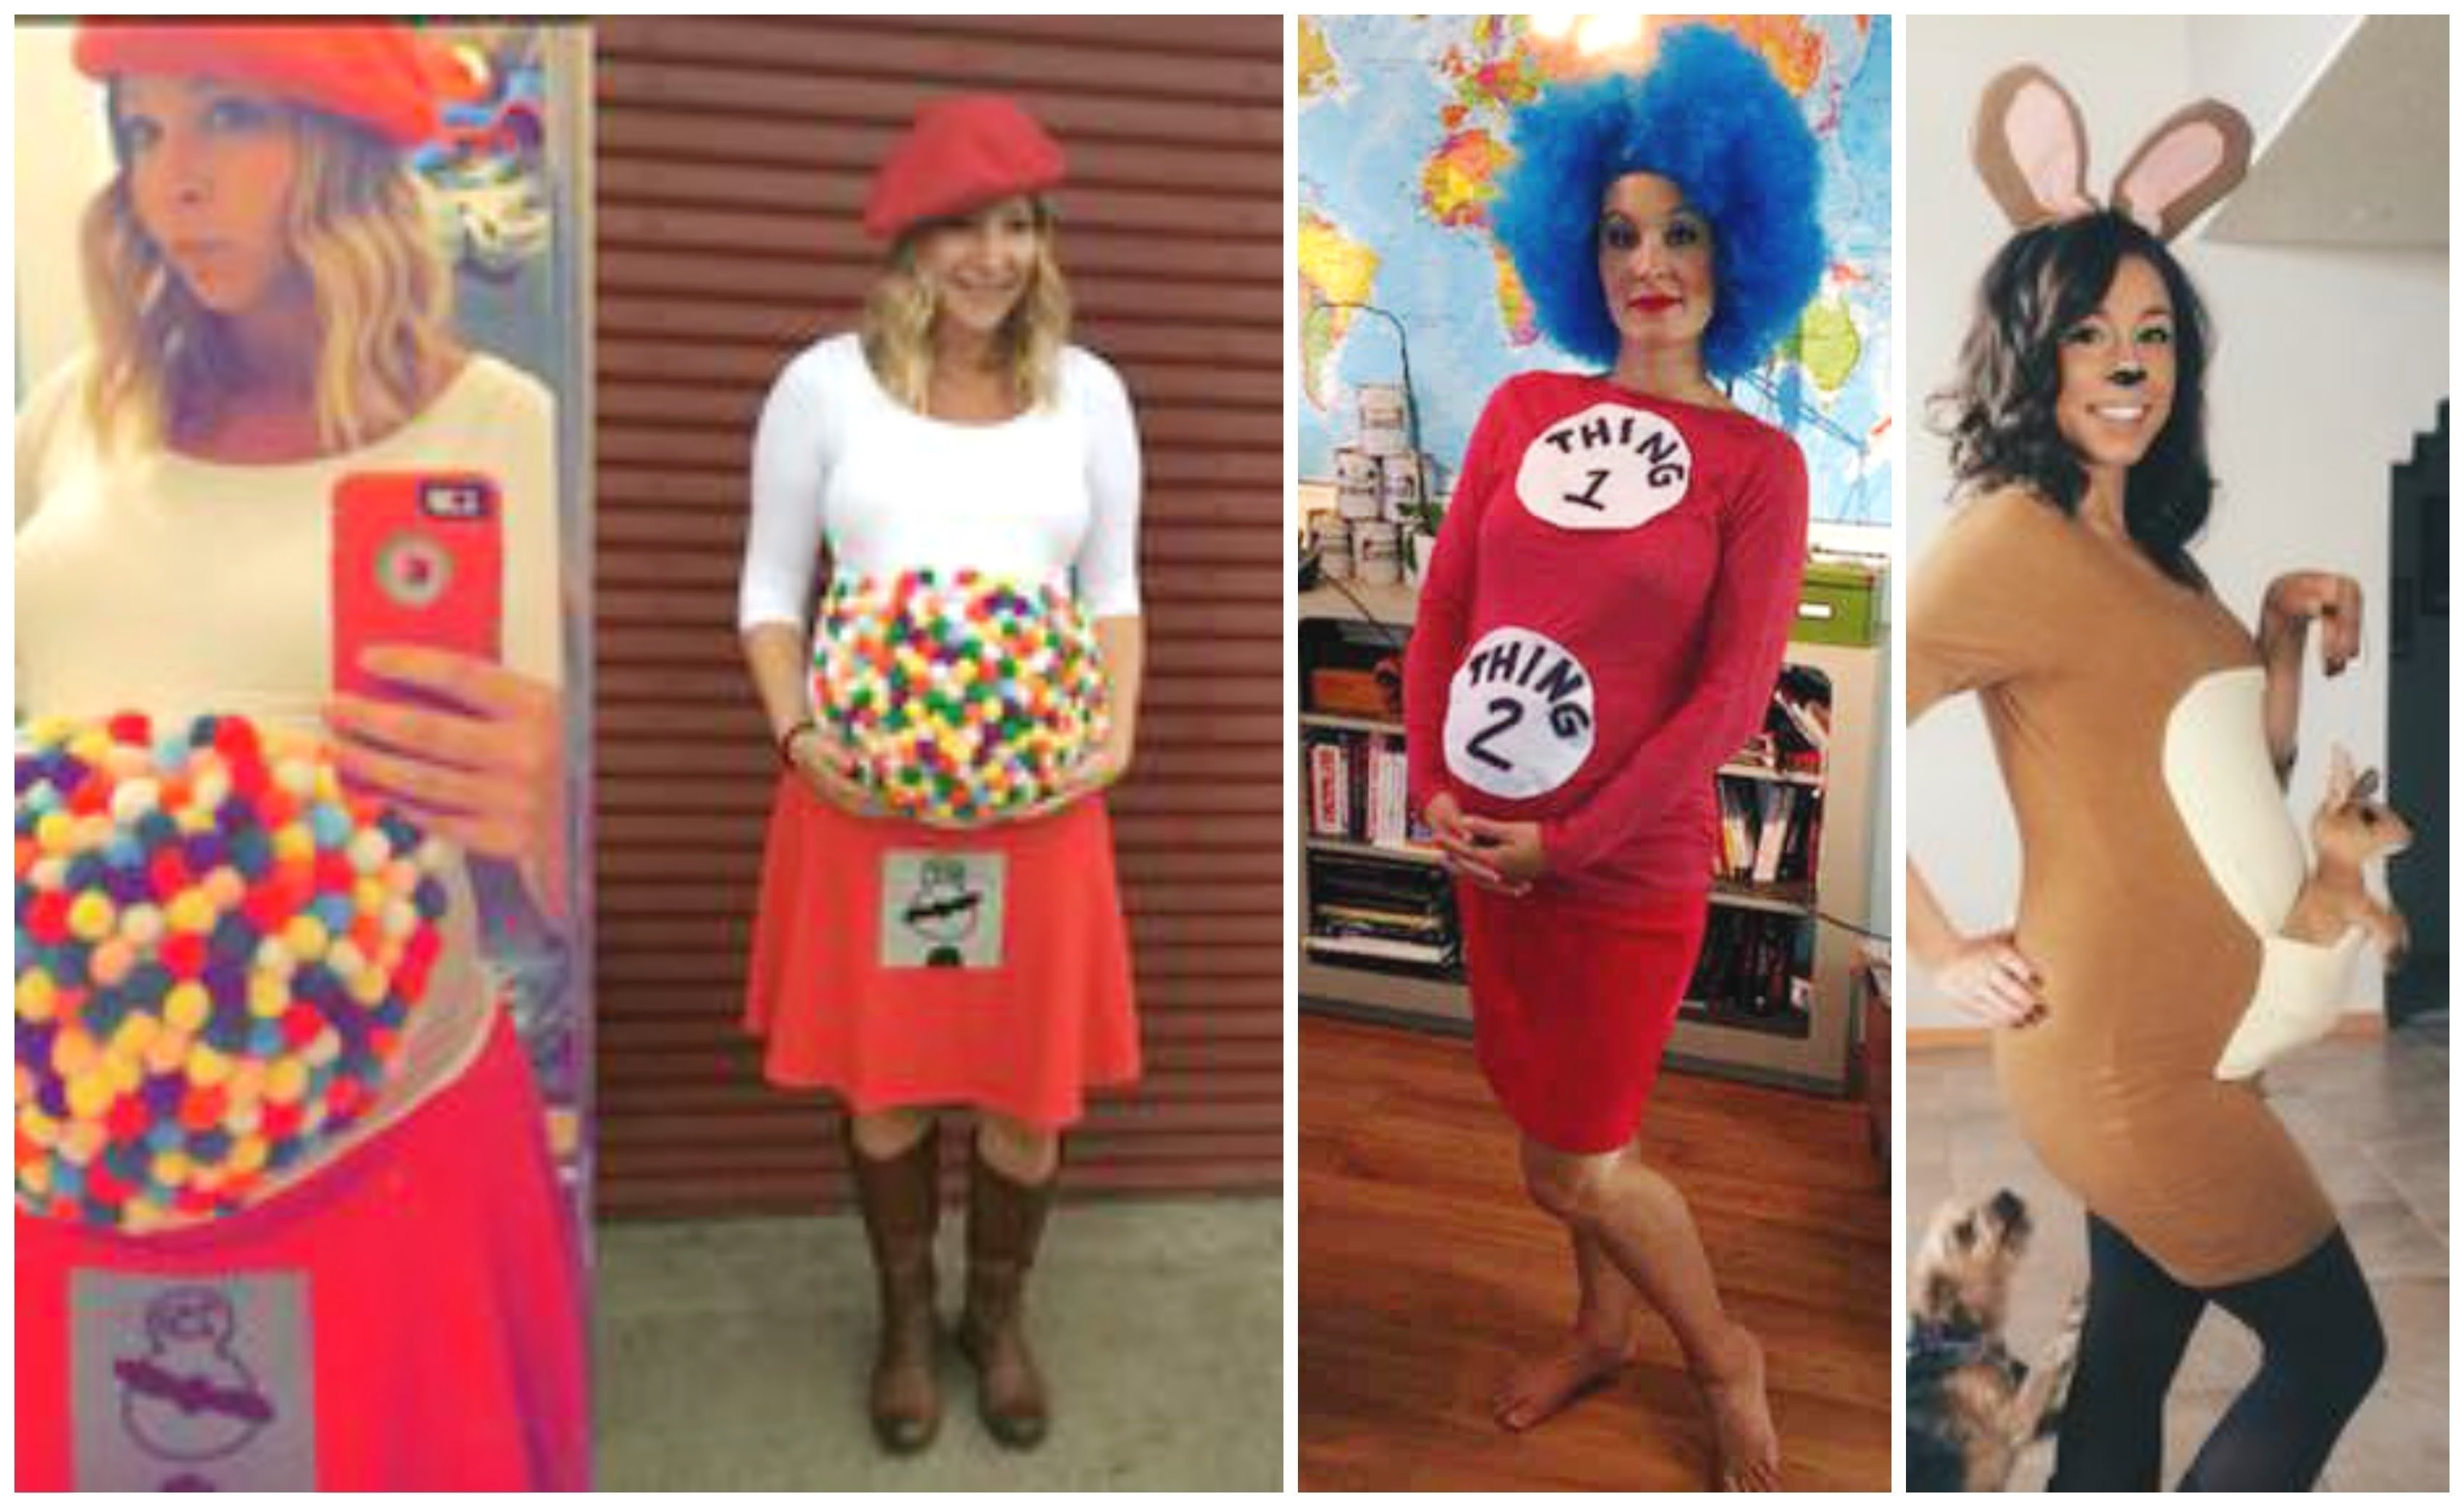 10 Lovable Unique Women Halloween Costume Ideas creative maternity halloween costume ideas costume ideas for 1 2020